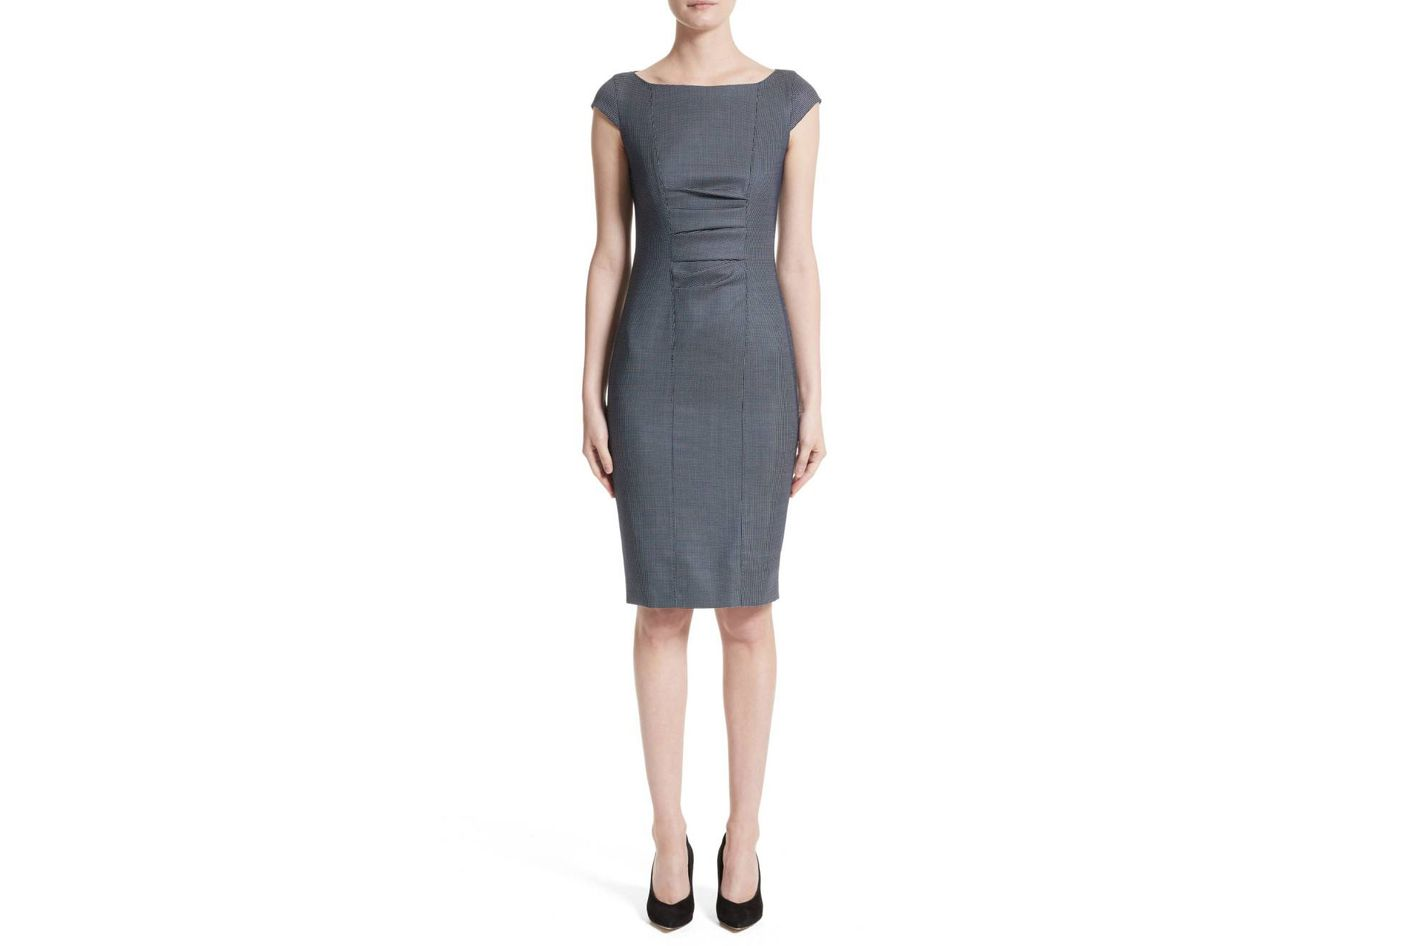 Max Mara Tasso Stretch Wool & Silk Sheath Dress